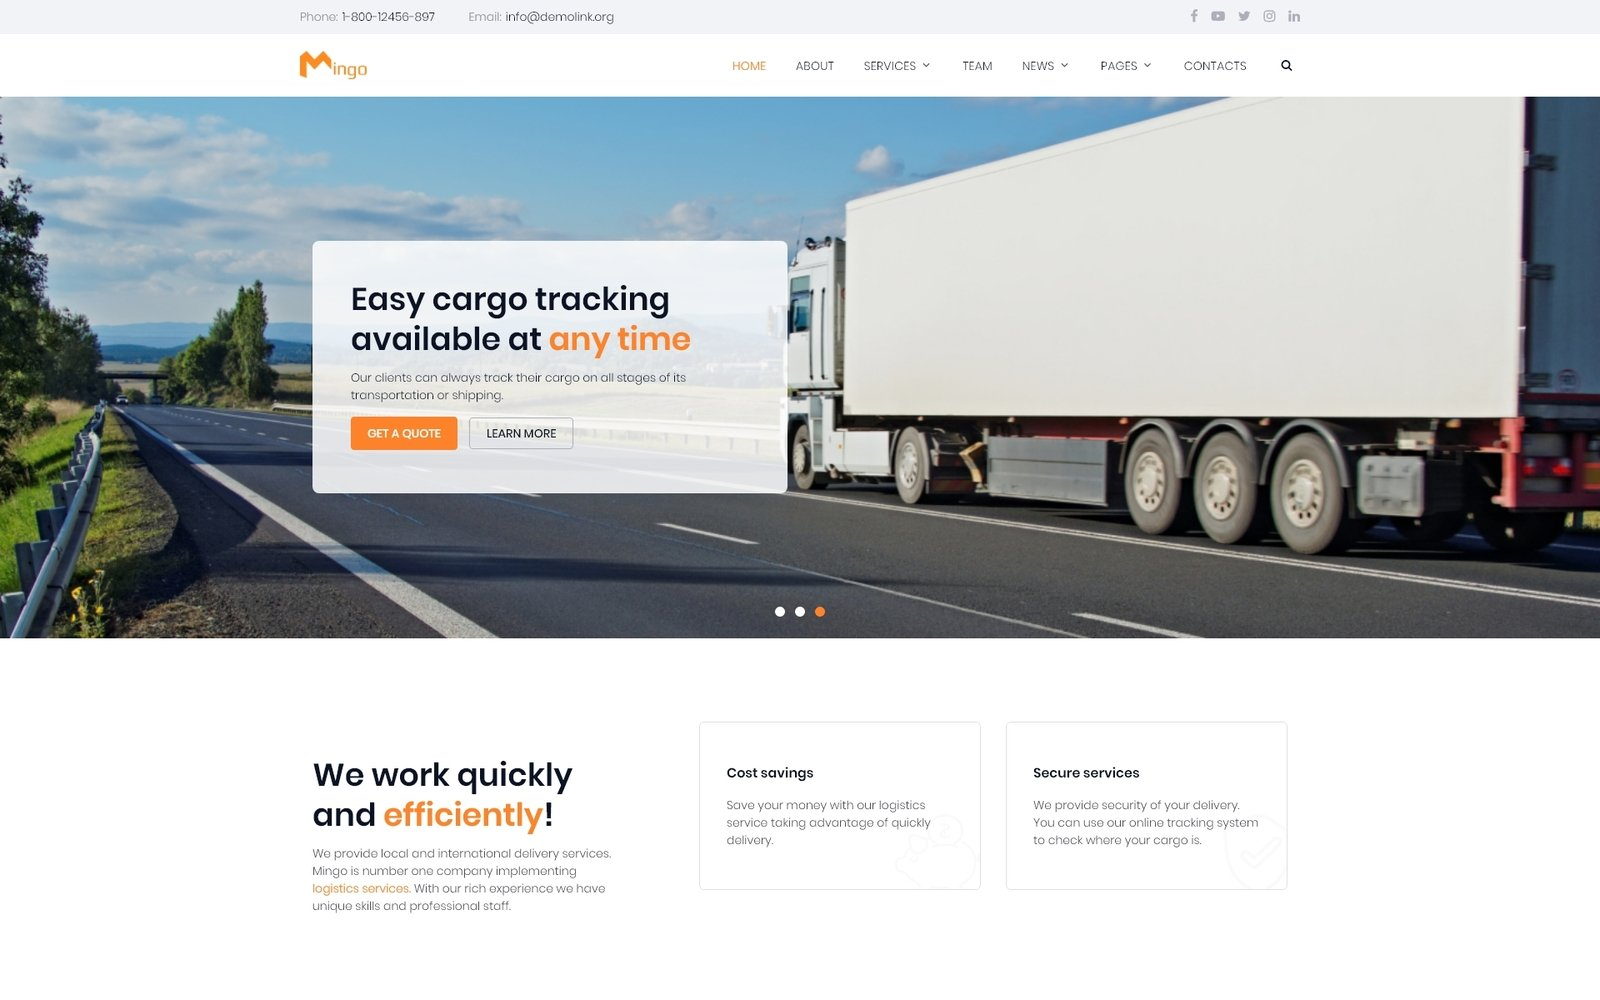 Mingo - Delivery Services Multipage Clean HTML Website Template